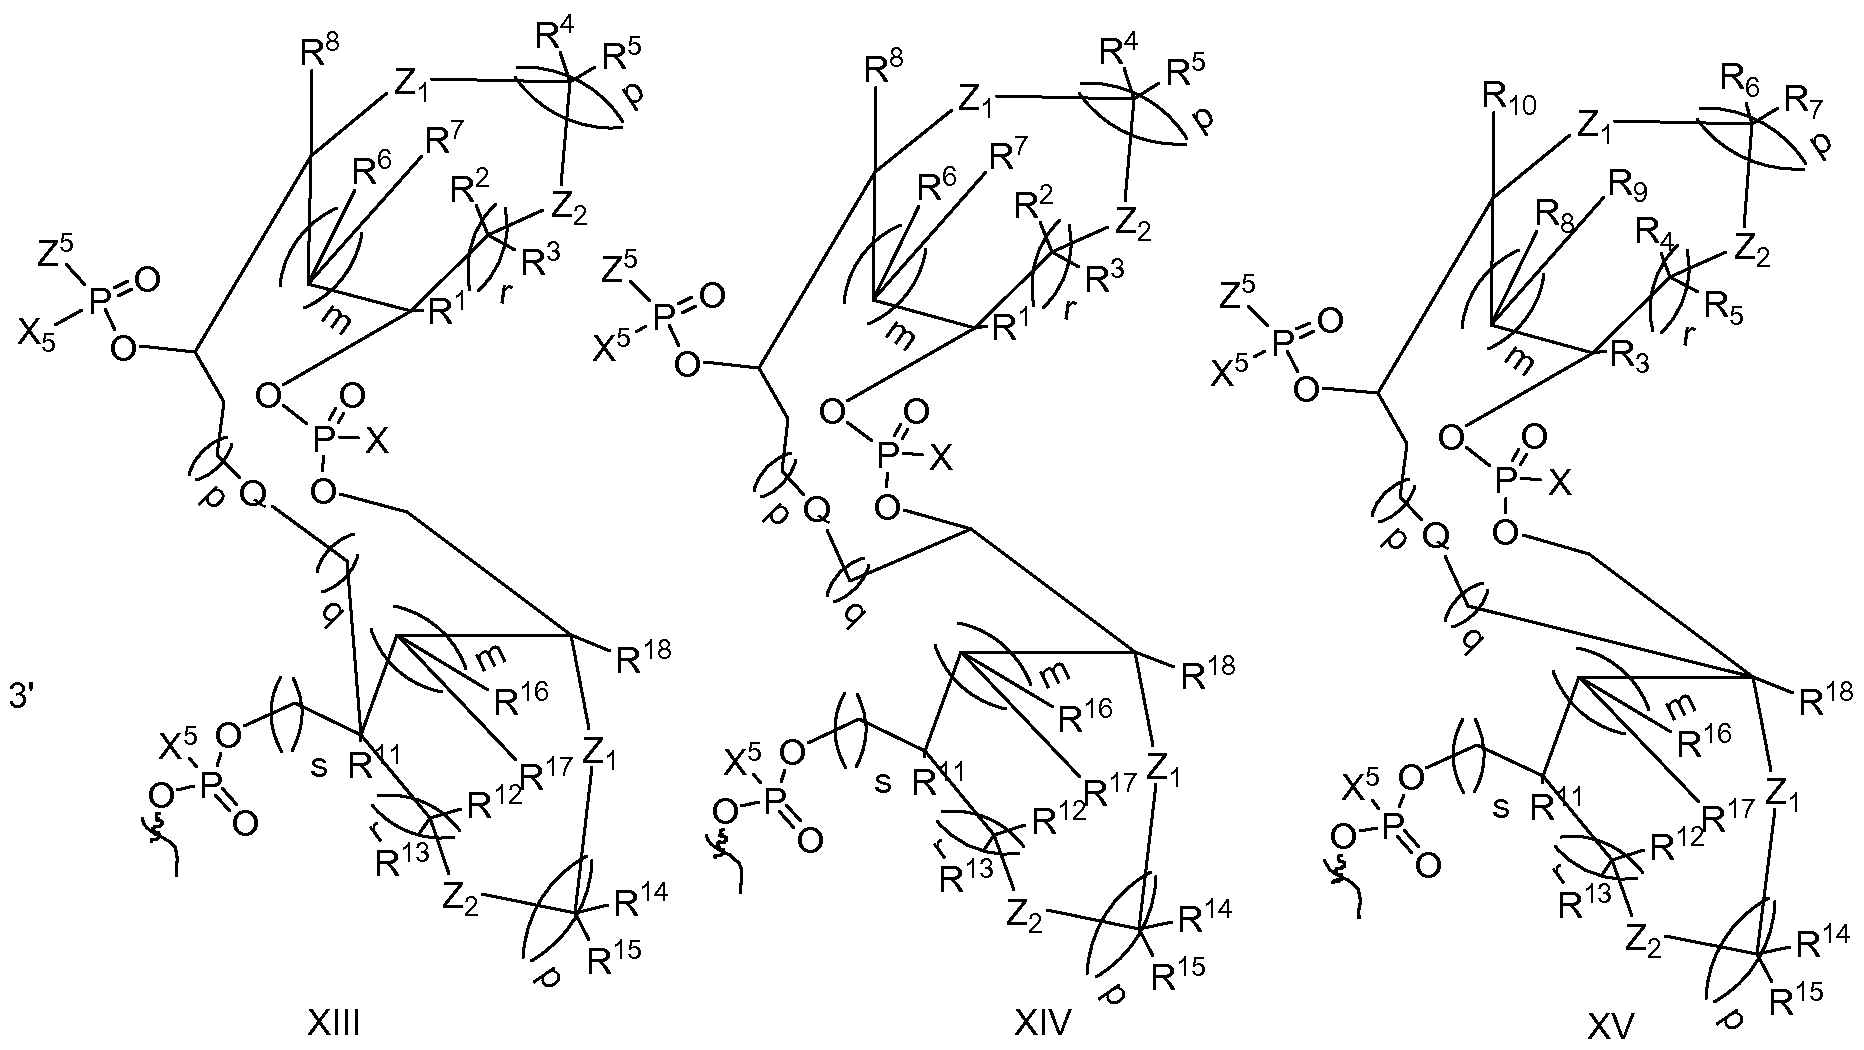 wo2011133868a2 conformationally restricted dinucleotide monomers CFO Resume Hug figure imgf000053 0001